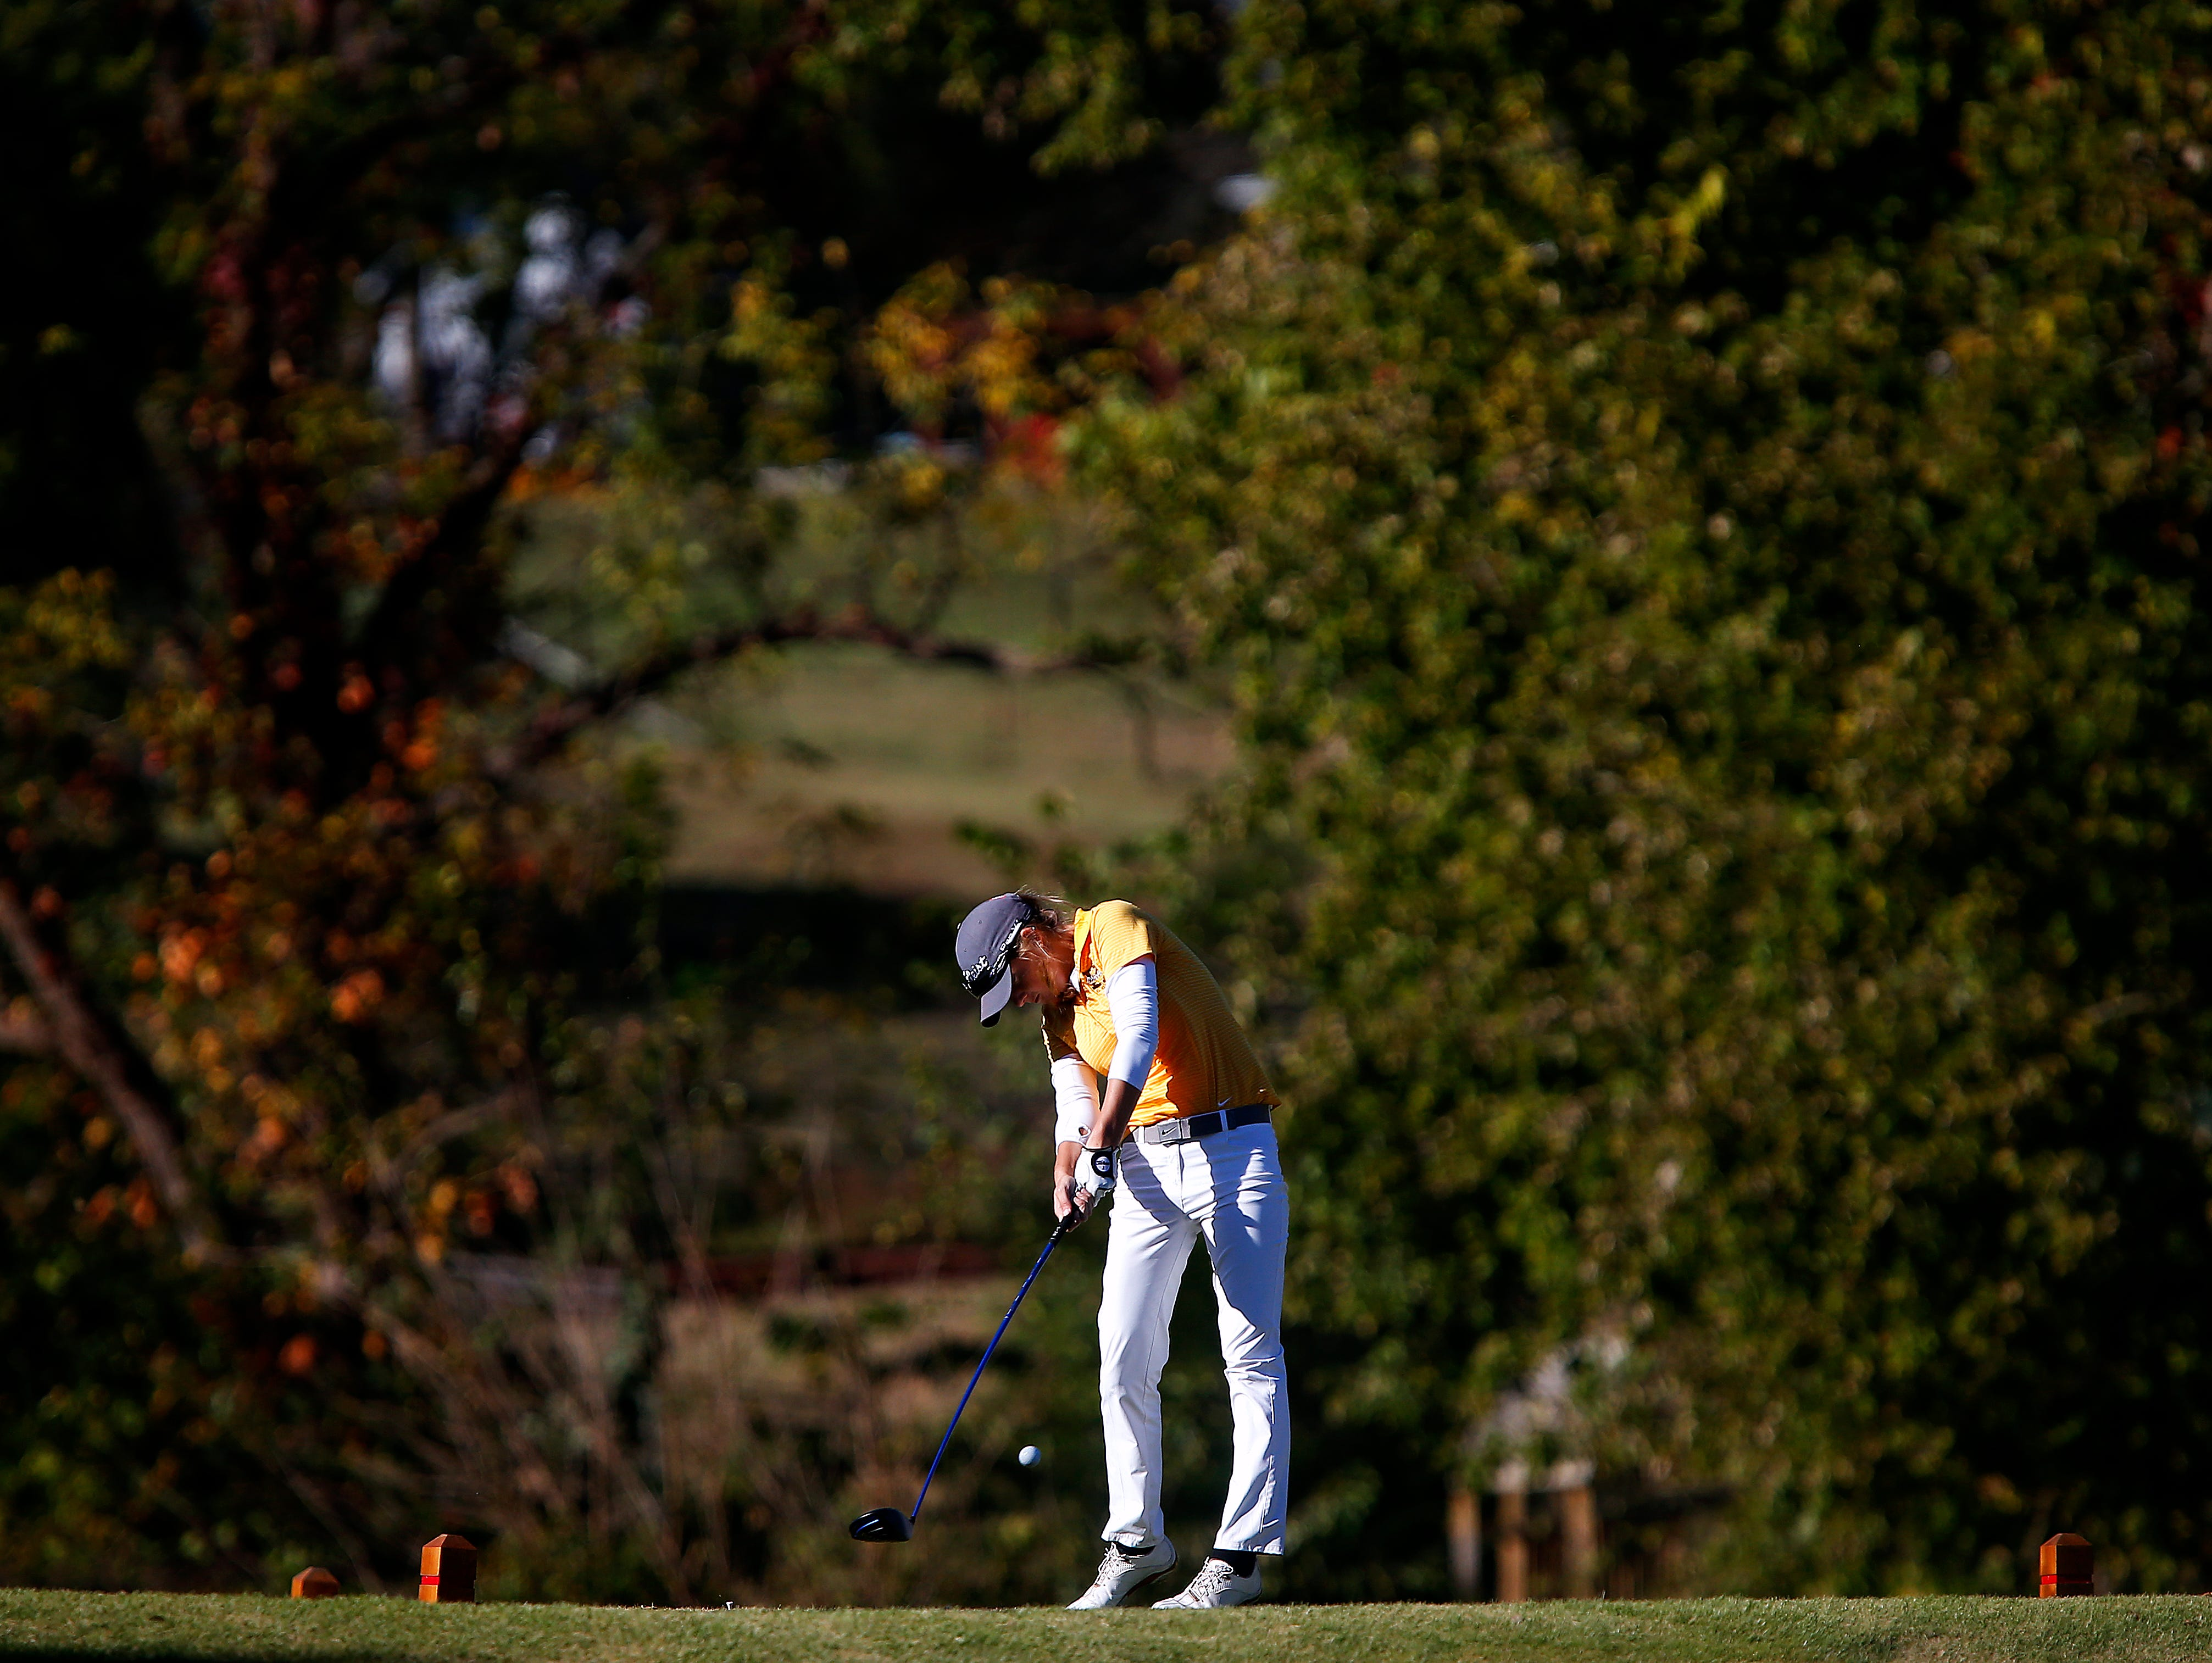 Kickapoo High School golfer Ari Acuff tees off from the 18th hole during the 2015 MSHSAA Class 2 Girls Golf State Championship played at Rivercut Golf Club in Springfield, Mo. on Oct. 13, 2015.